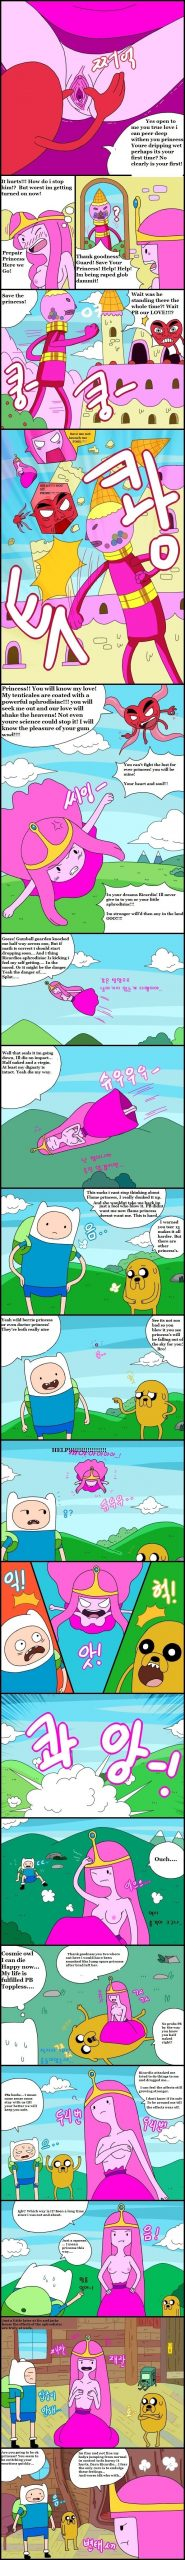 Adult Time 2 Adventure Time 03